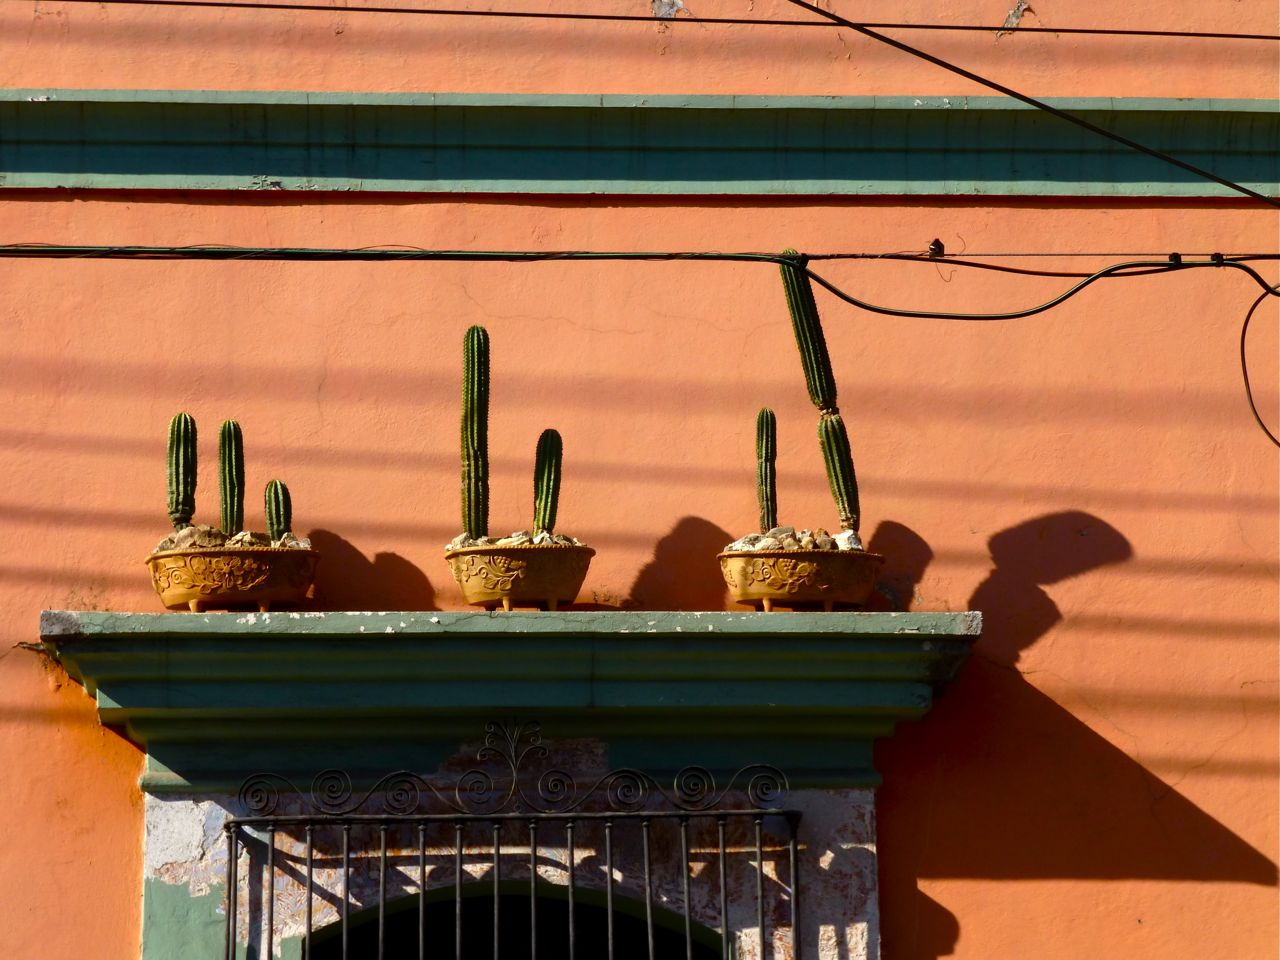 shadows from cactus & portico on orange wall